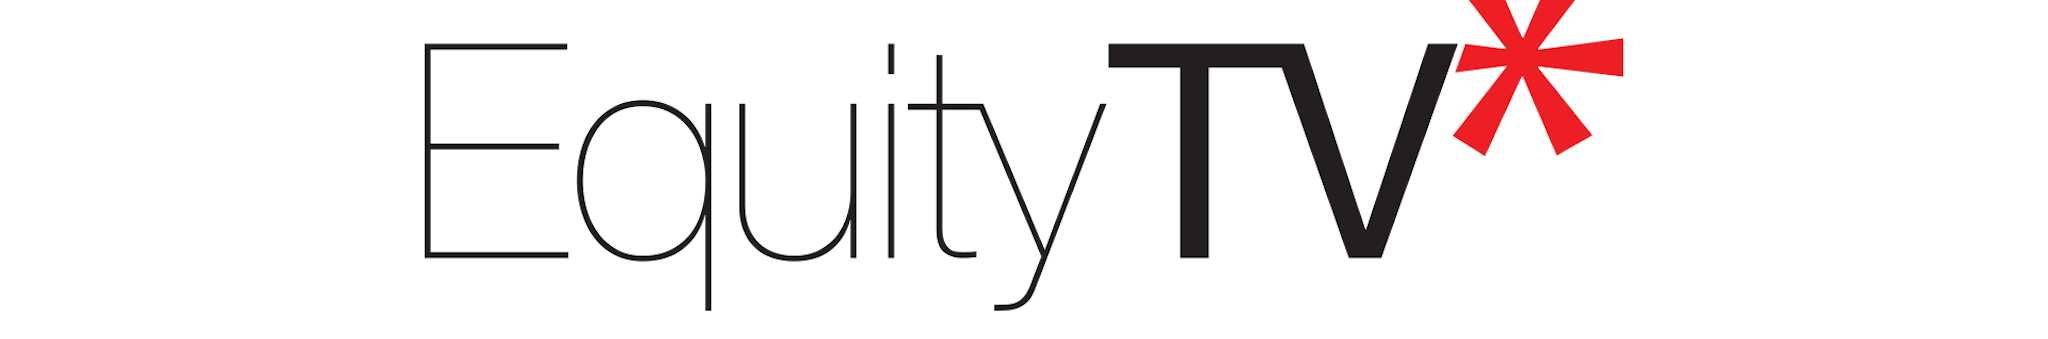 Equity TV logo